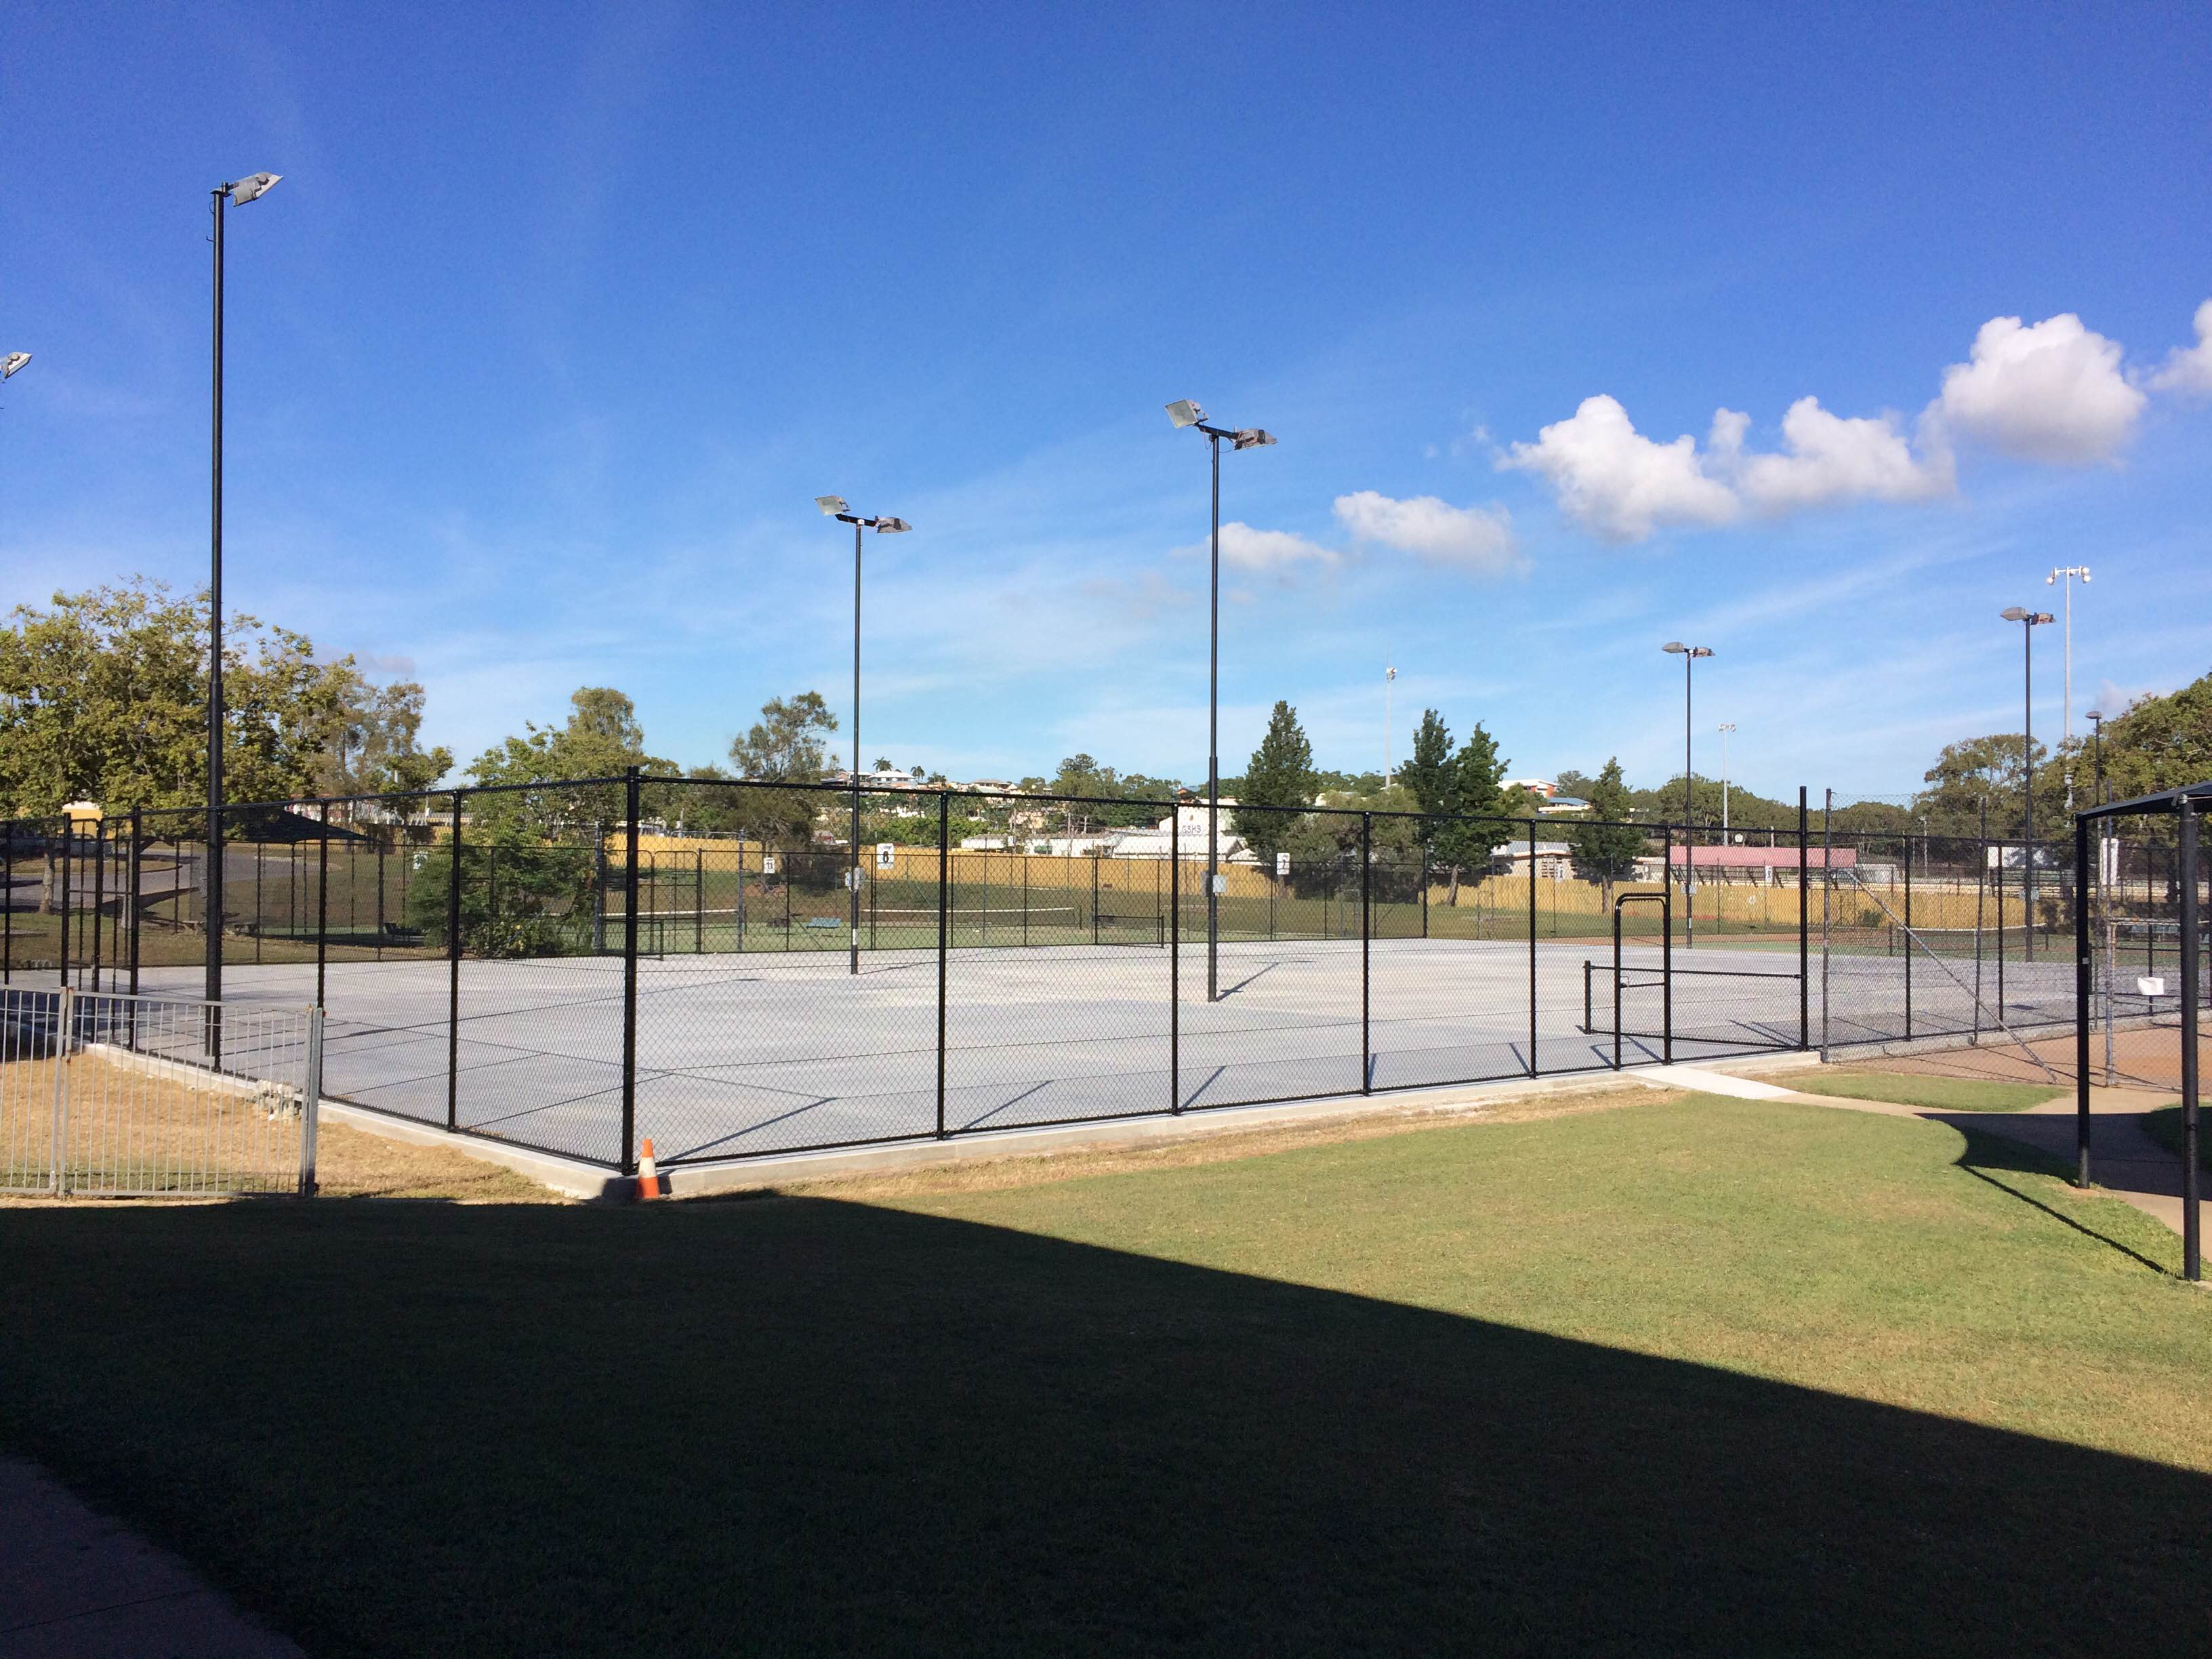 Court 5 new fencing